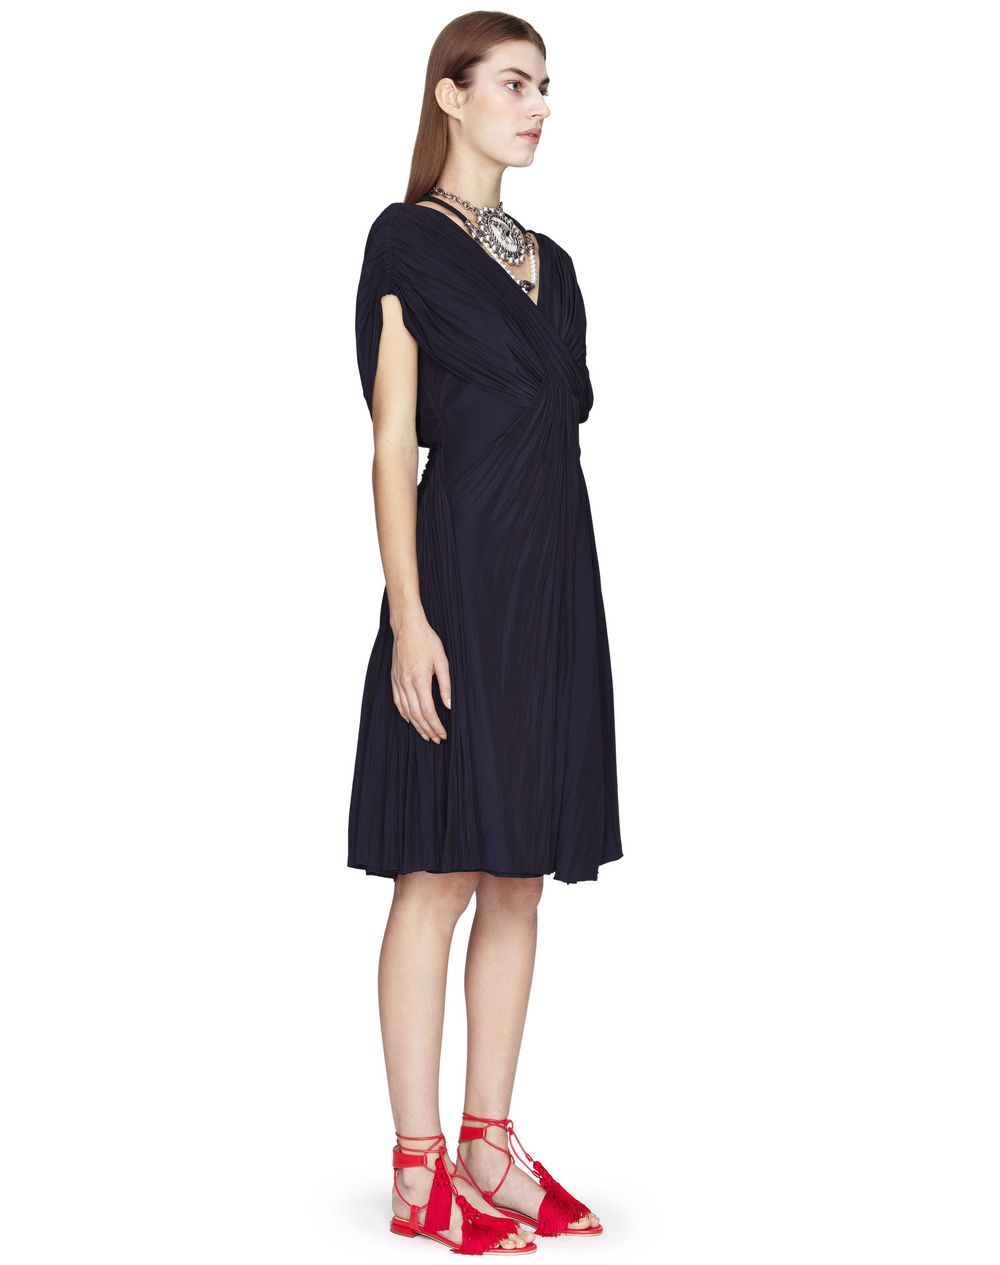 MIDNIGHT BLUE DRAPED DRESS - Lanvin